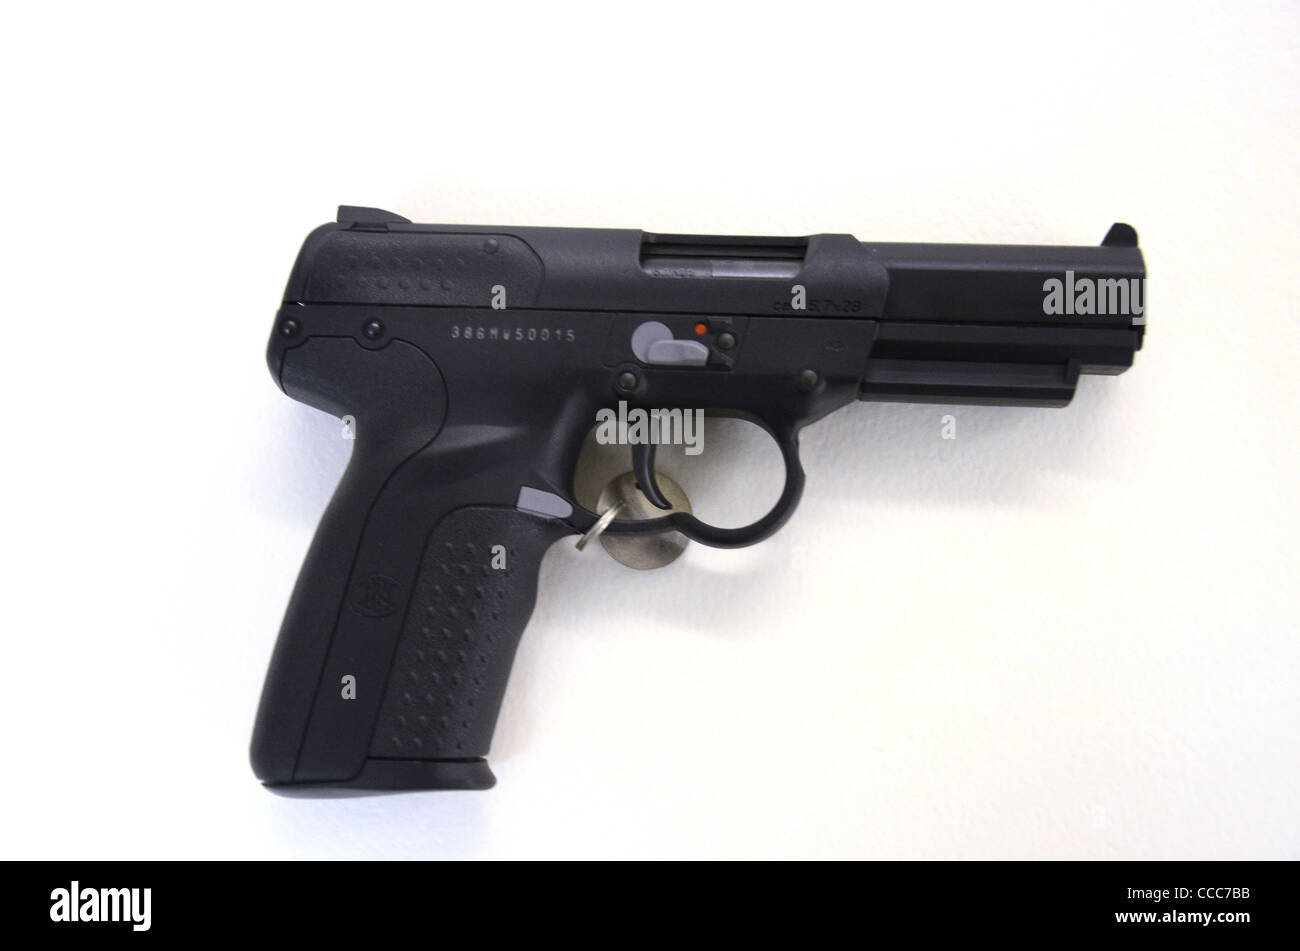 FN FIVE SEVEN TACTICAL PISTOL 1995 - Stock Image